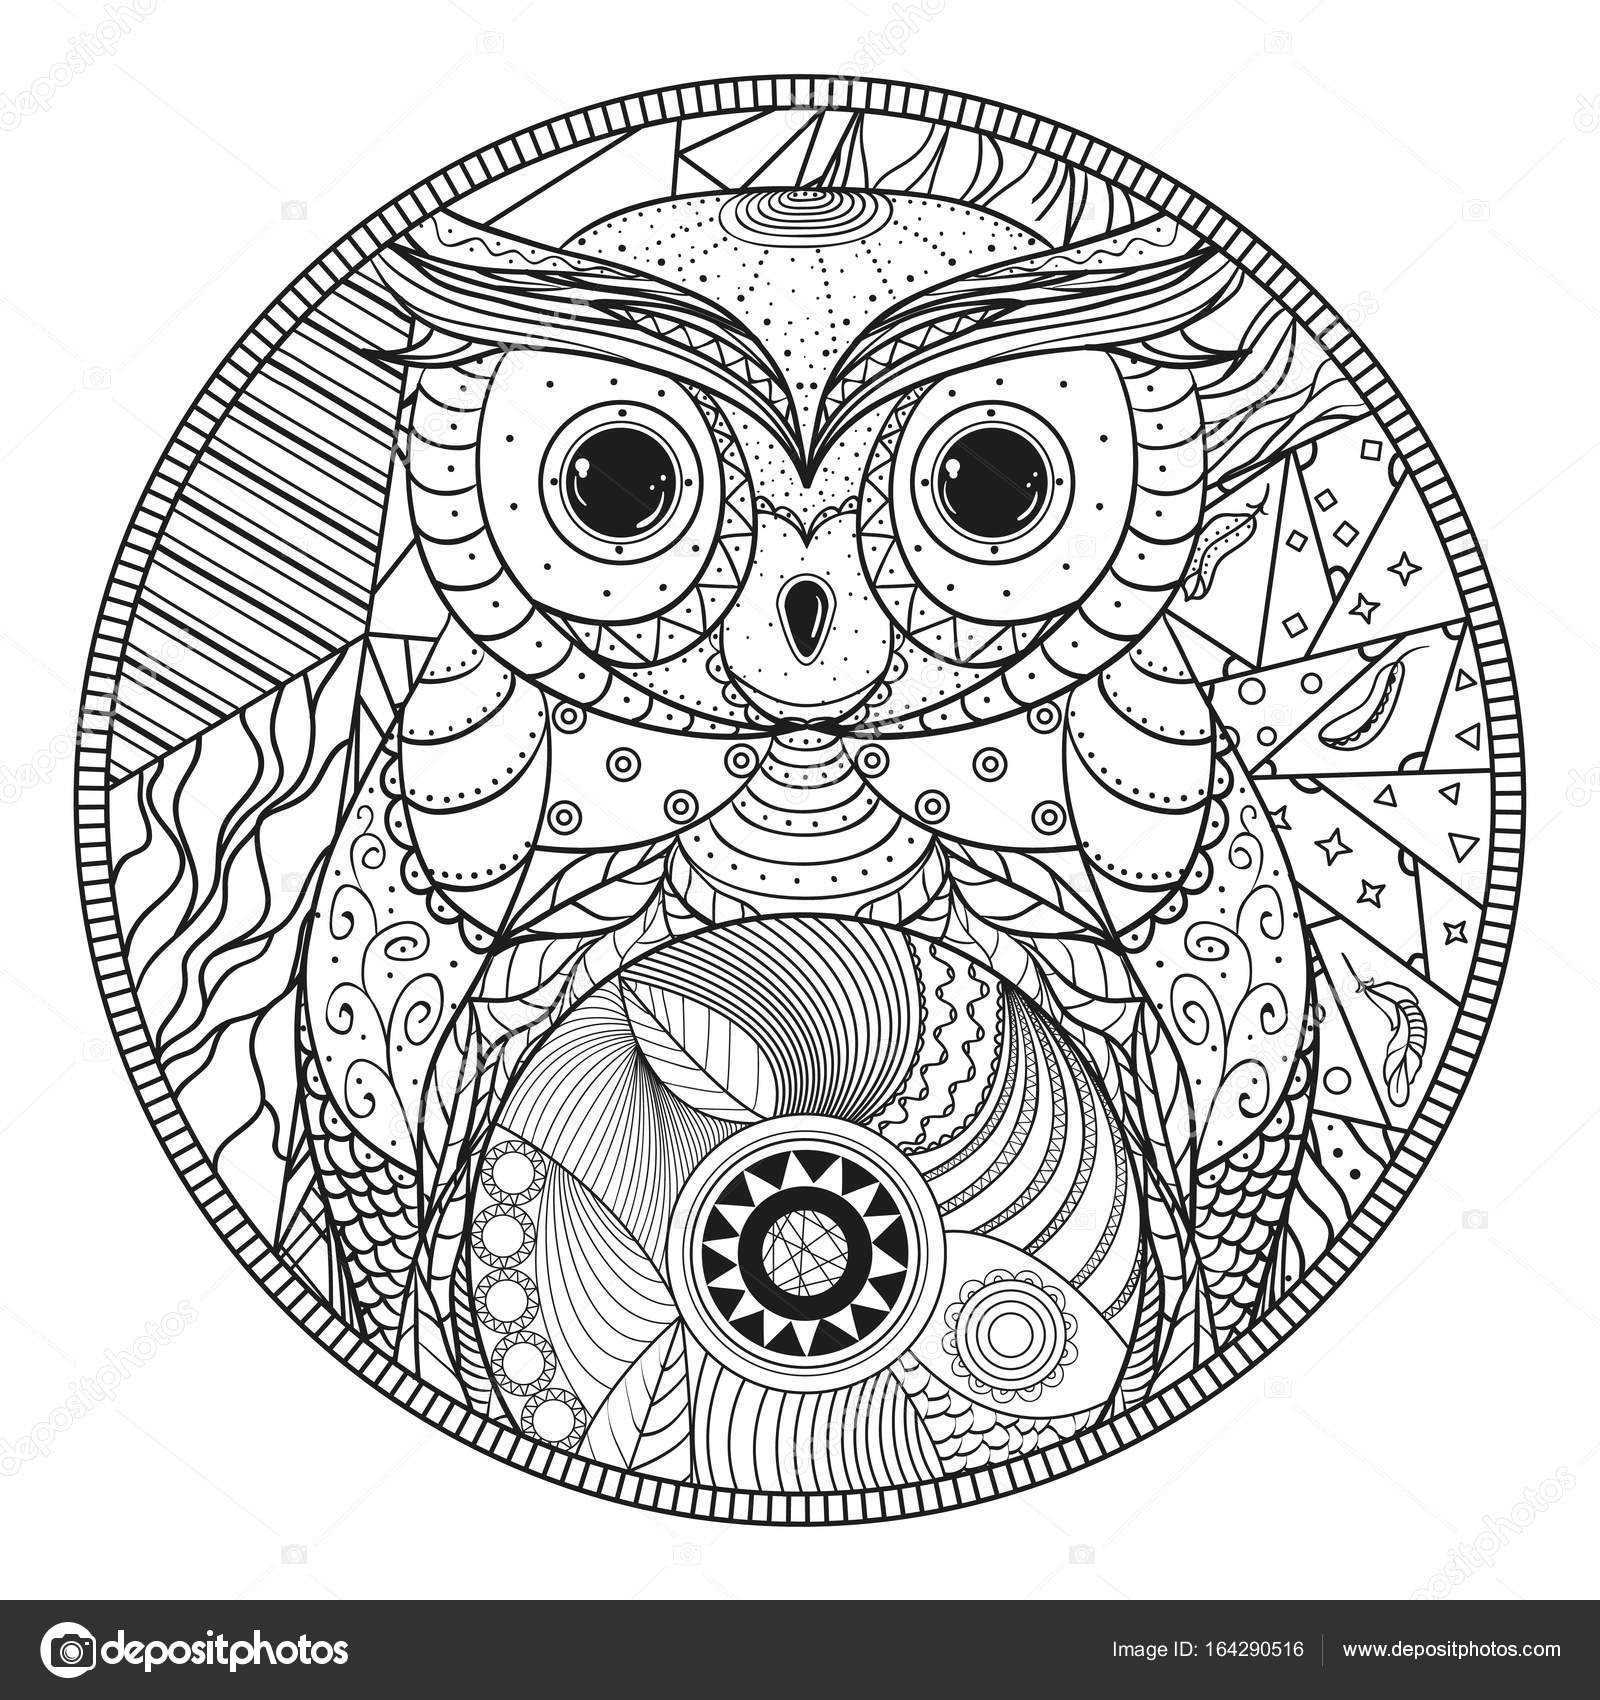 Mandala Chouette Zentangle Image Vectorielle